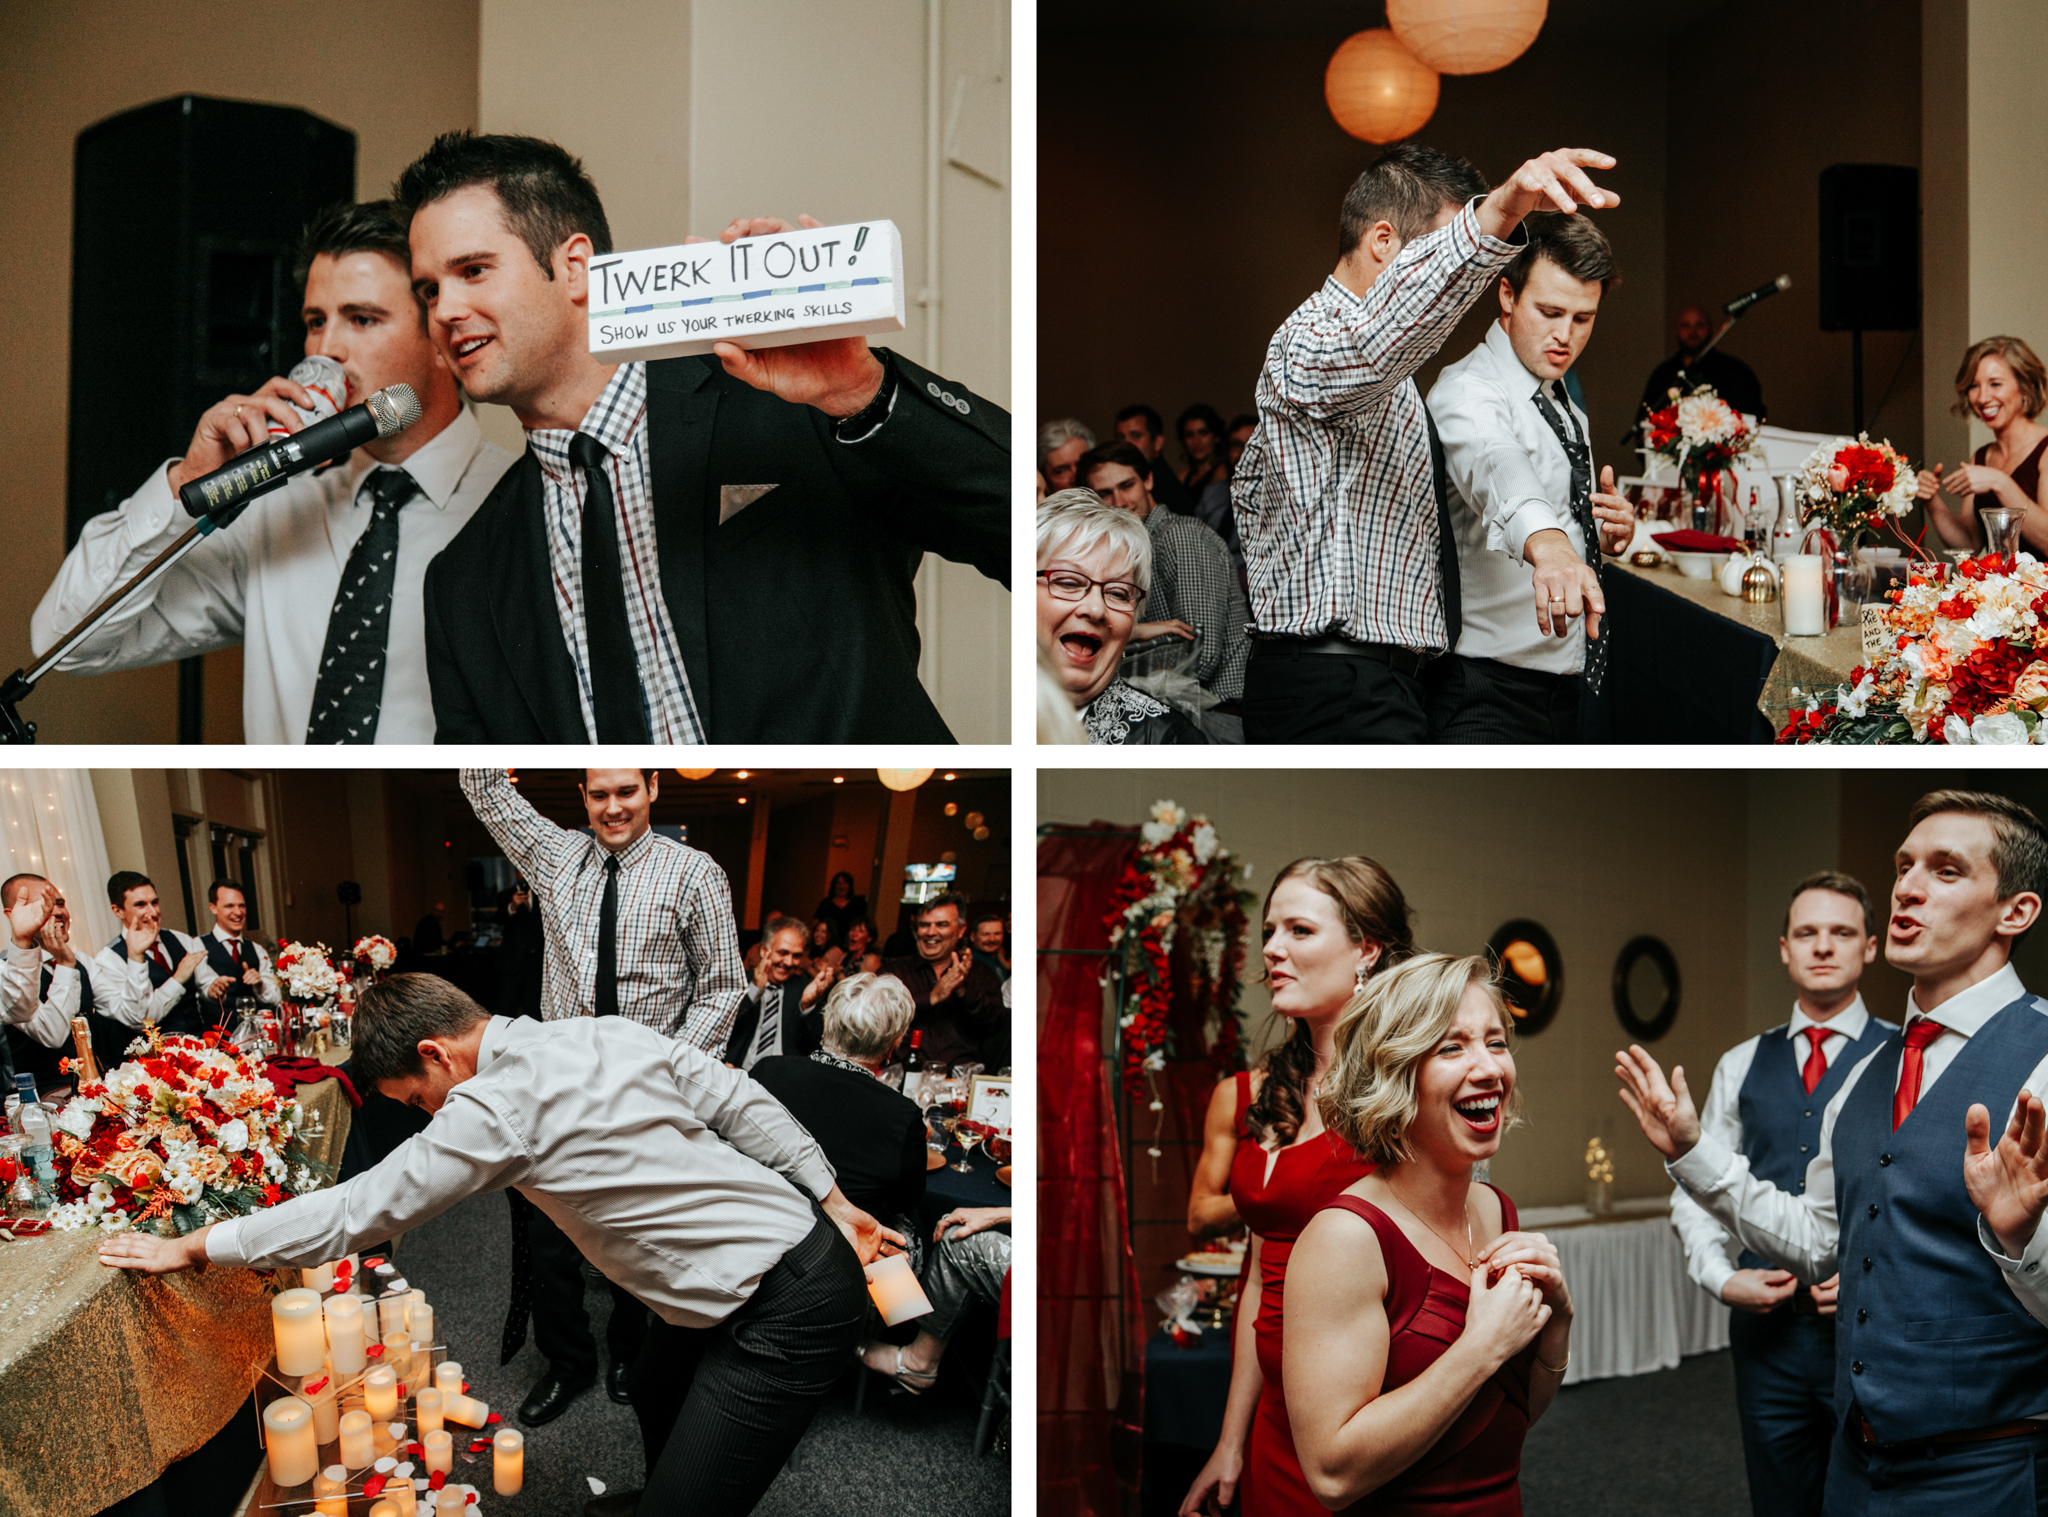 lethbridge-photographer-love-and-be-loved-photography-rocky-mountain-turf-club-reception-katie-kelli-wedding-picture-image-photo-502.jpg